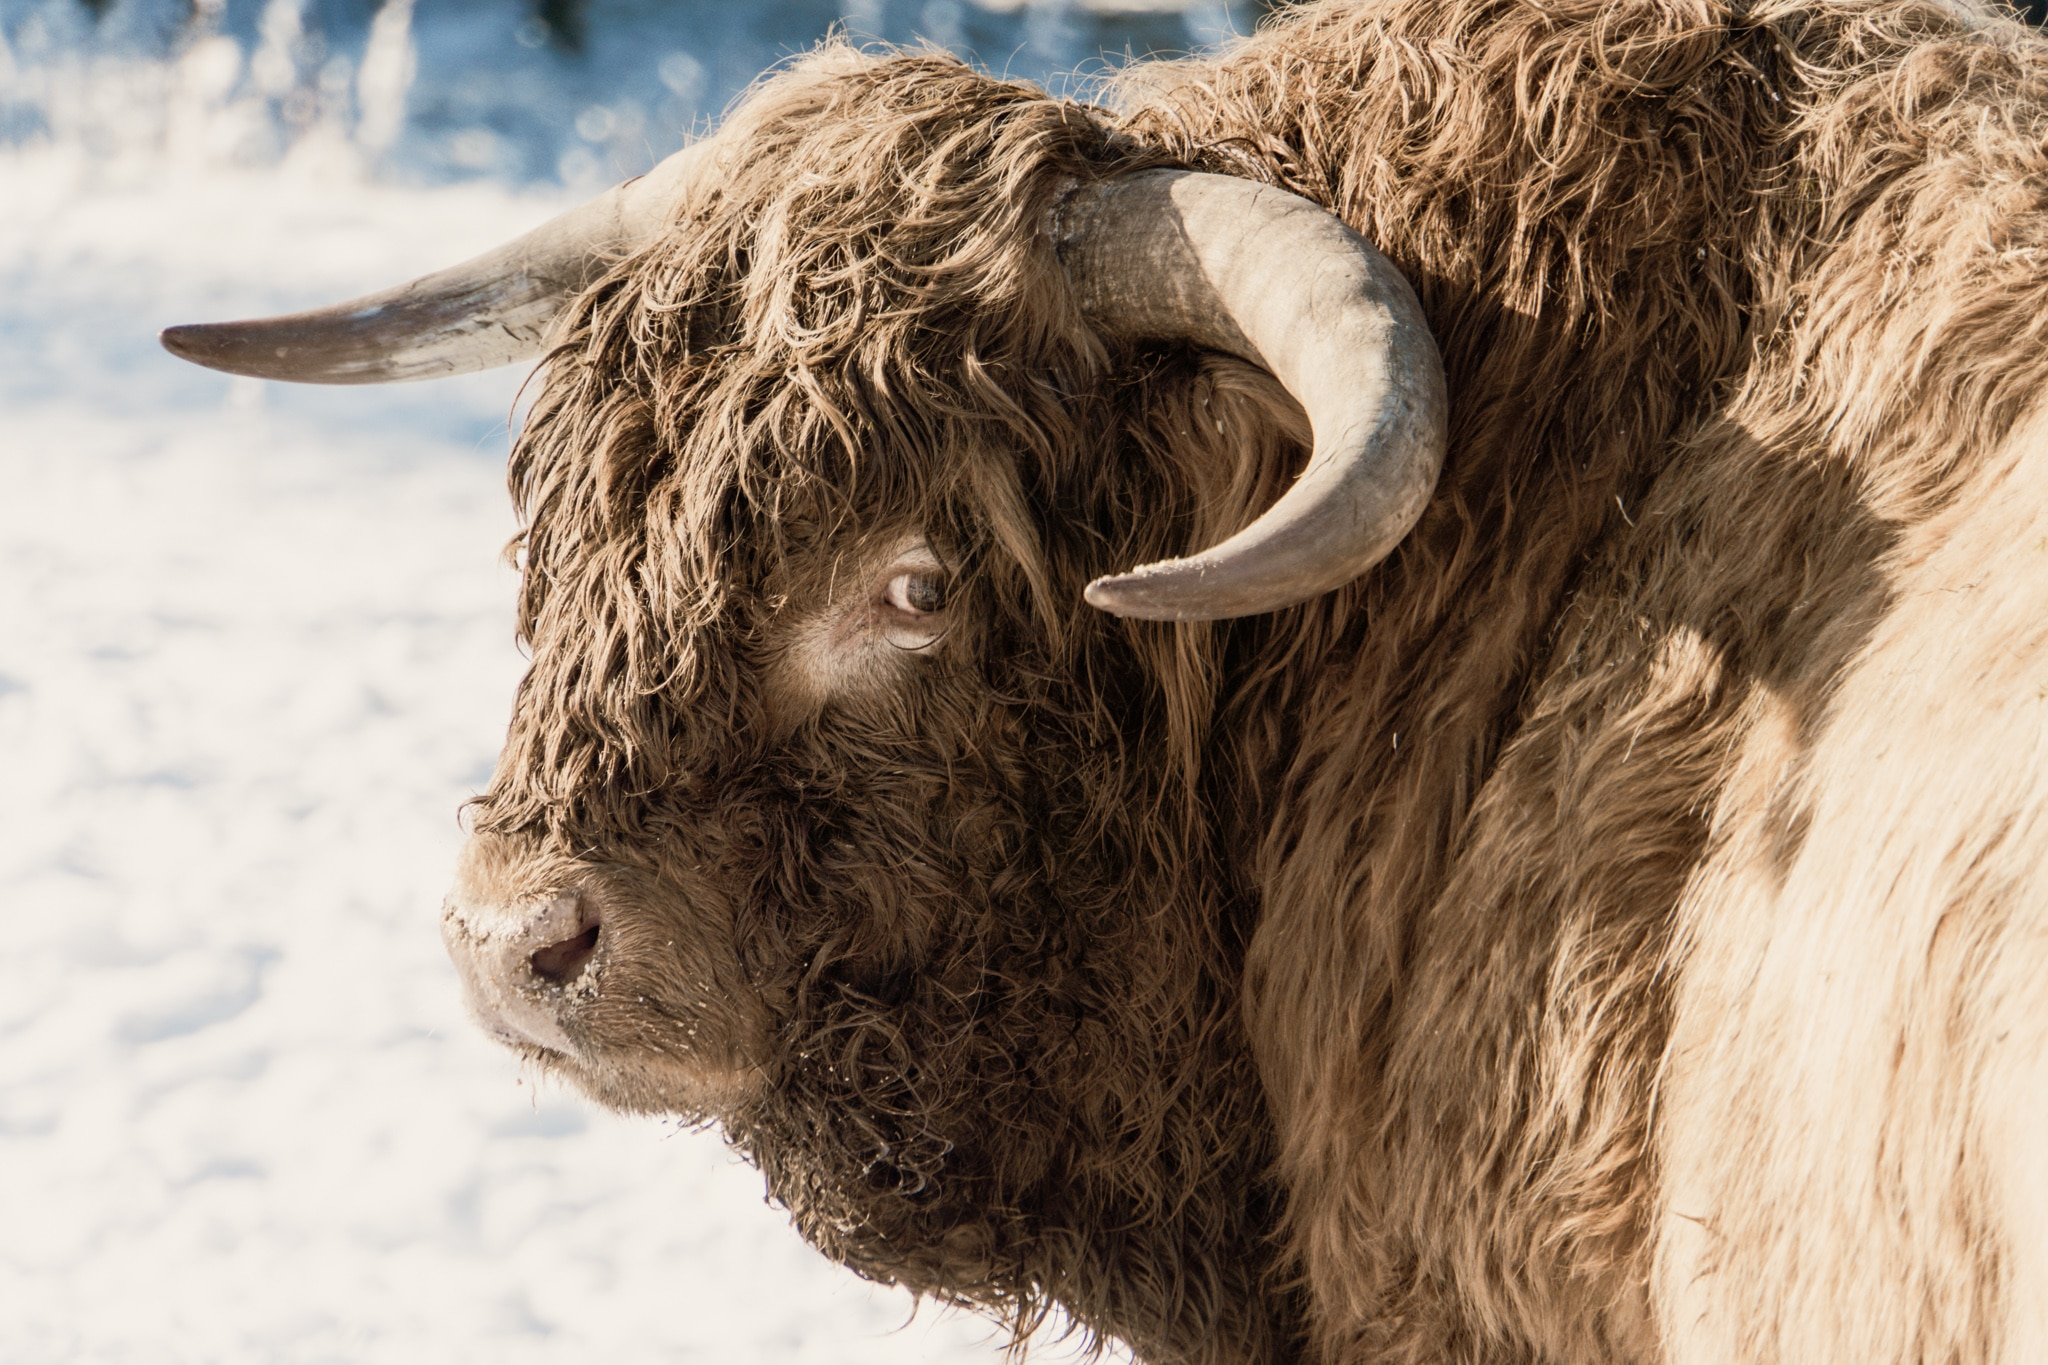 Cairngorms Nationalpark: Die SnowRoads Scenic Route in den Highlands - Hairy Coo, Highland Cow